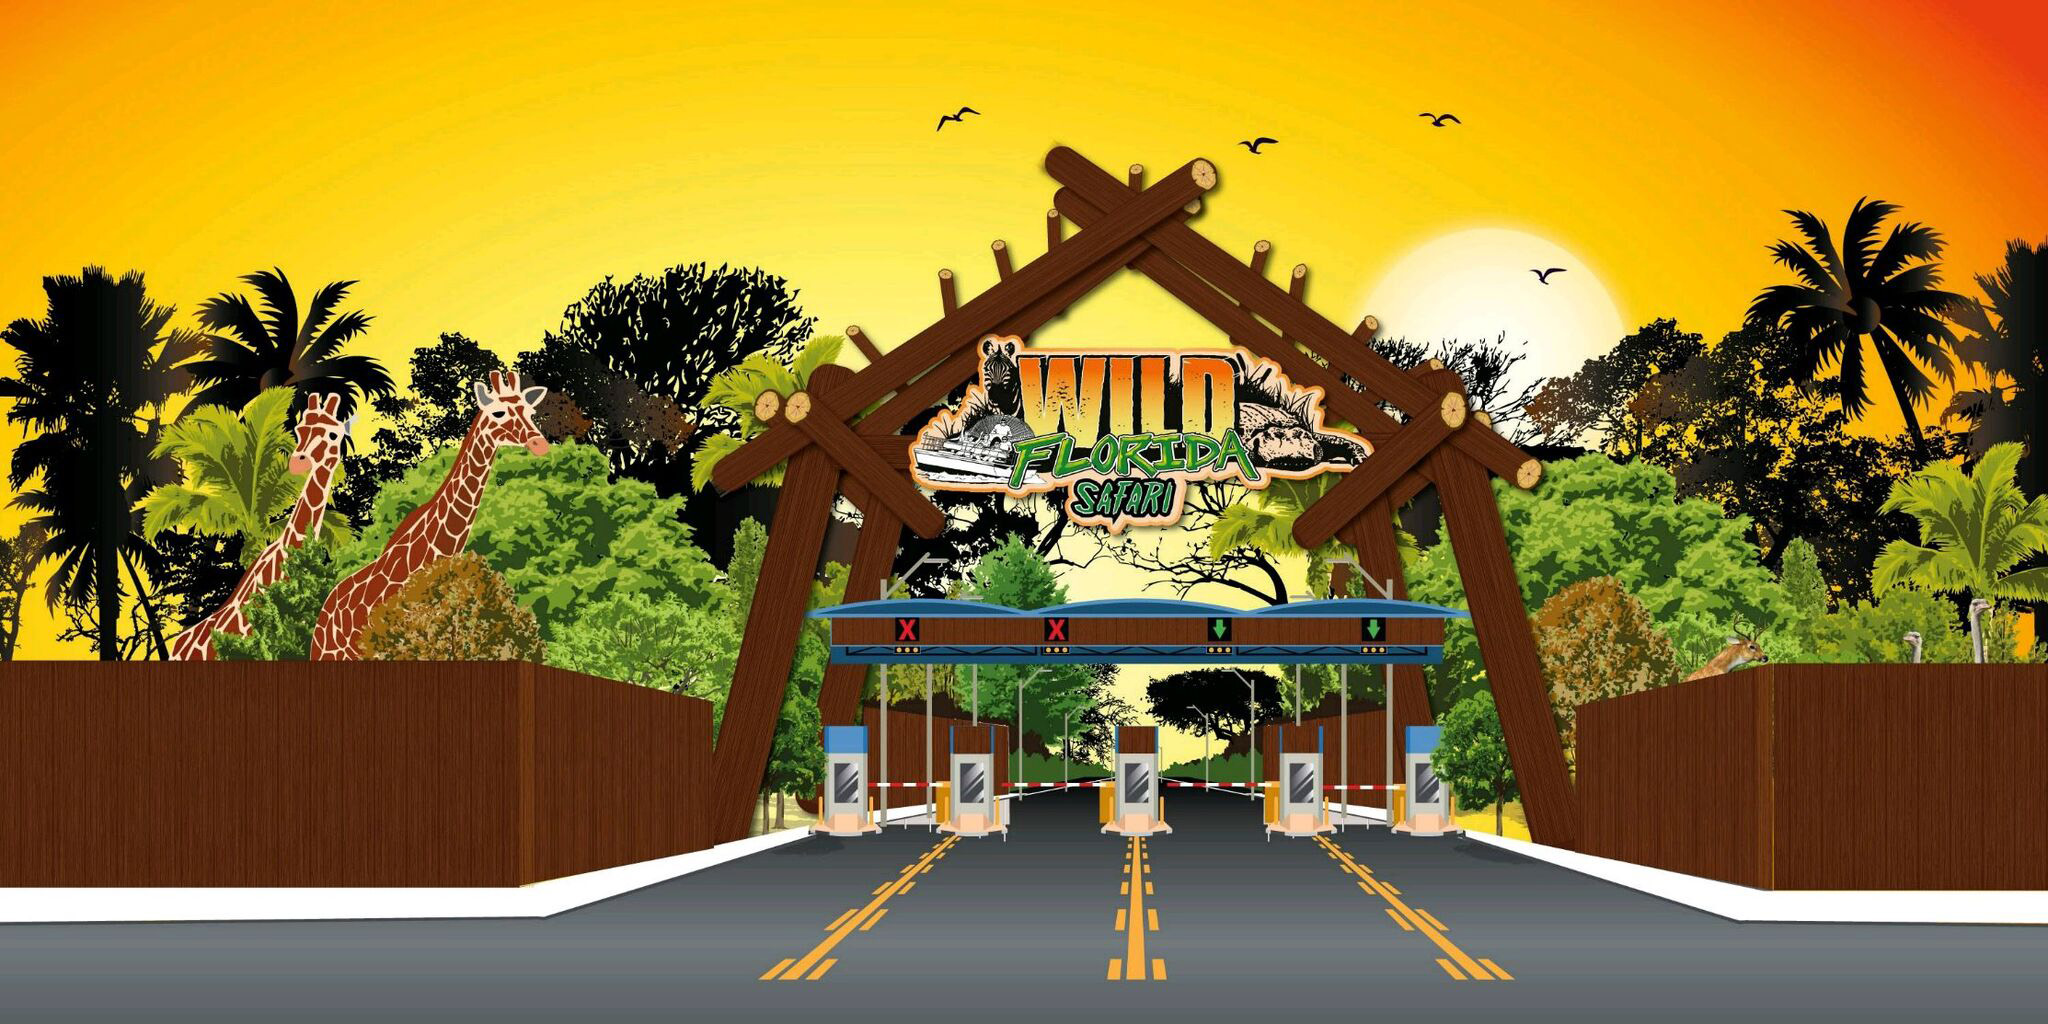 Wild Florida is expanding by more than six times its size to add a zipline and drive-through safari, bringing visitors nose-to-snout with giraffes, wild boars and other exotic animals.